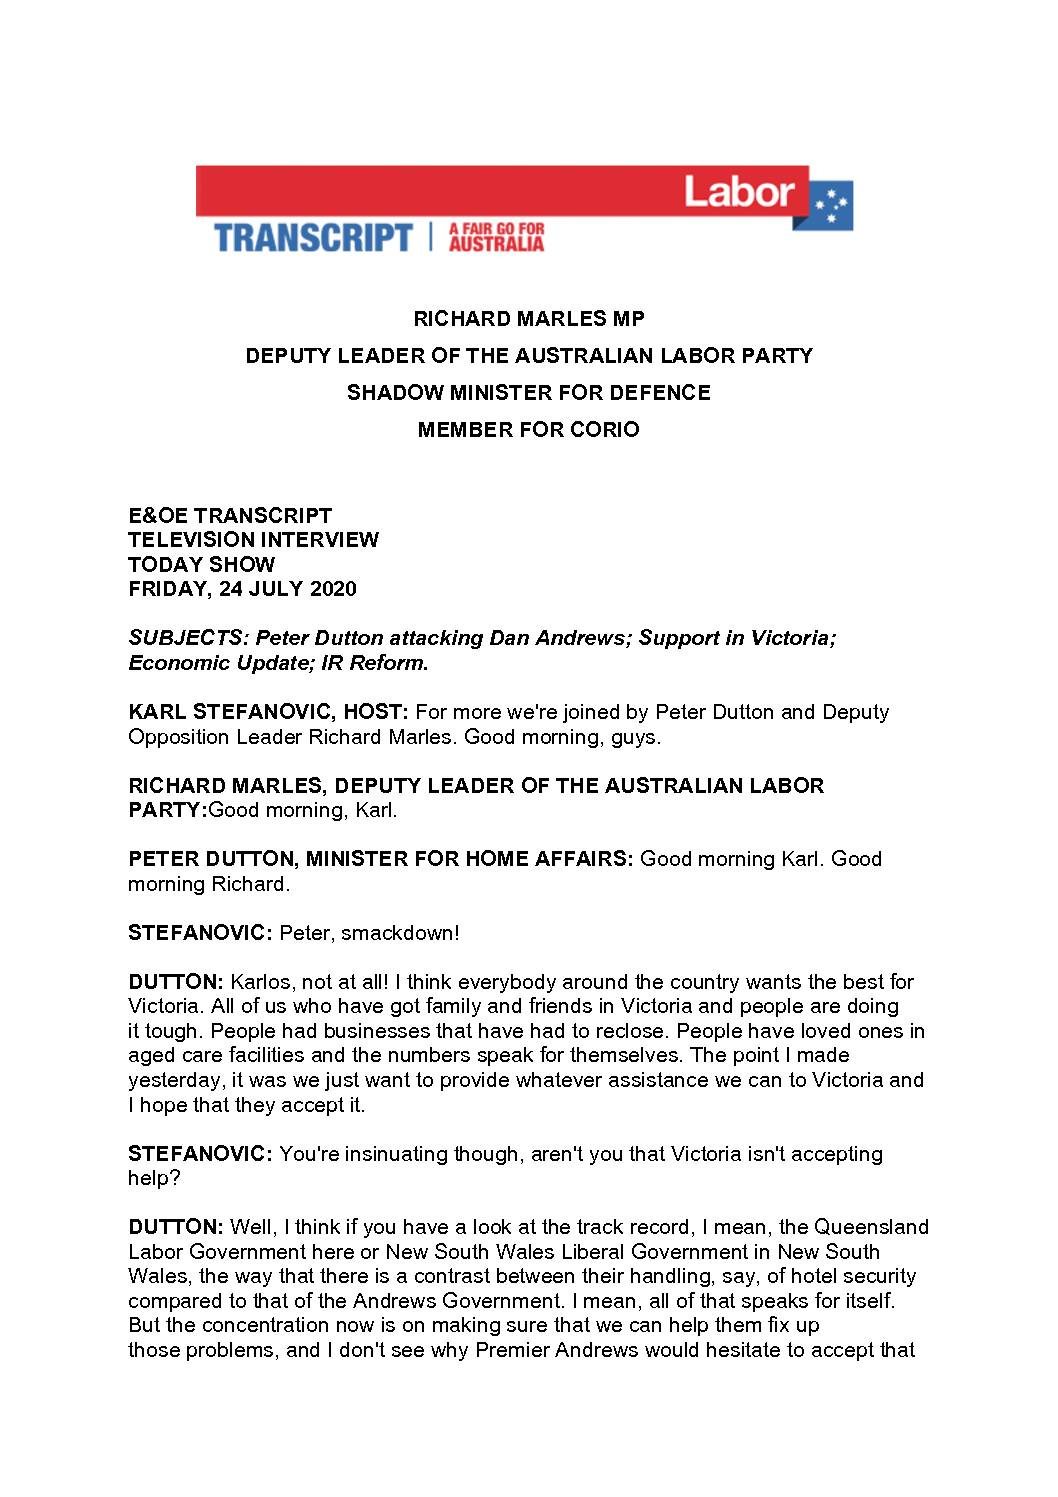 20.07.24-CHANNEL-9-THE-TODAY-SHOW-TRANSCRIPT